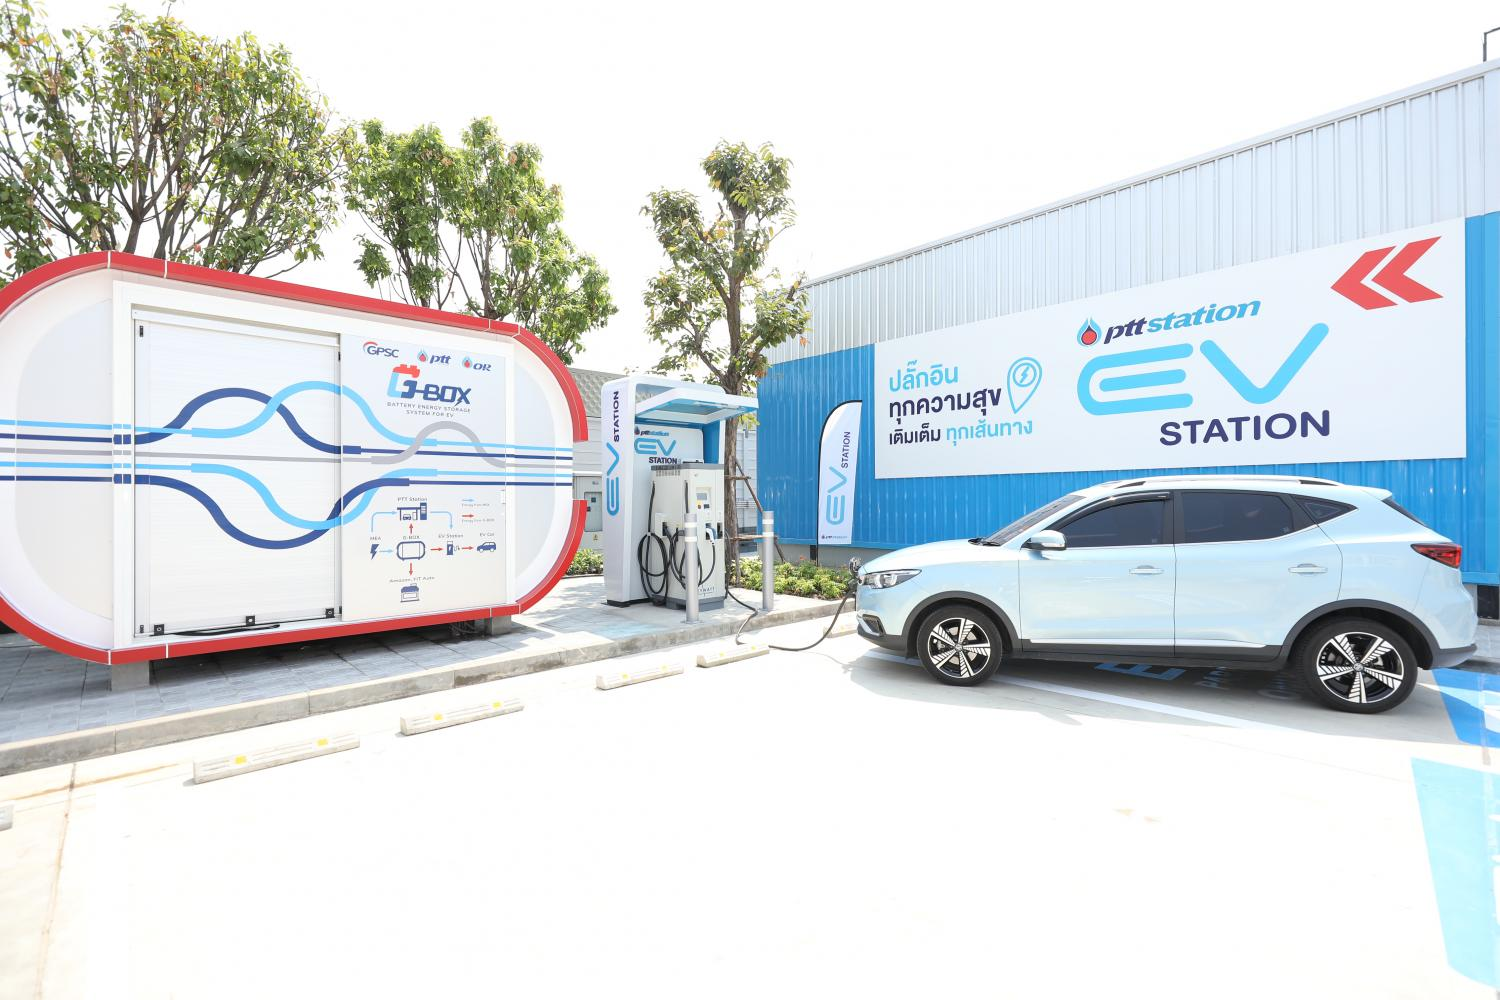 A car is charged at a G-Box, an energy storage system that works in tandem with EV charging outlets, at a PTT station in Nong Khaem district of Bangkok. Photo: PTT Oil and Retail (OR)